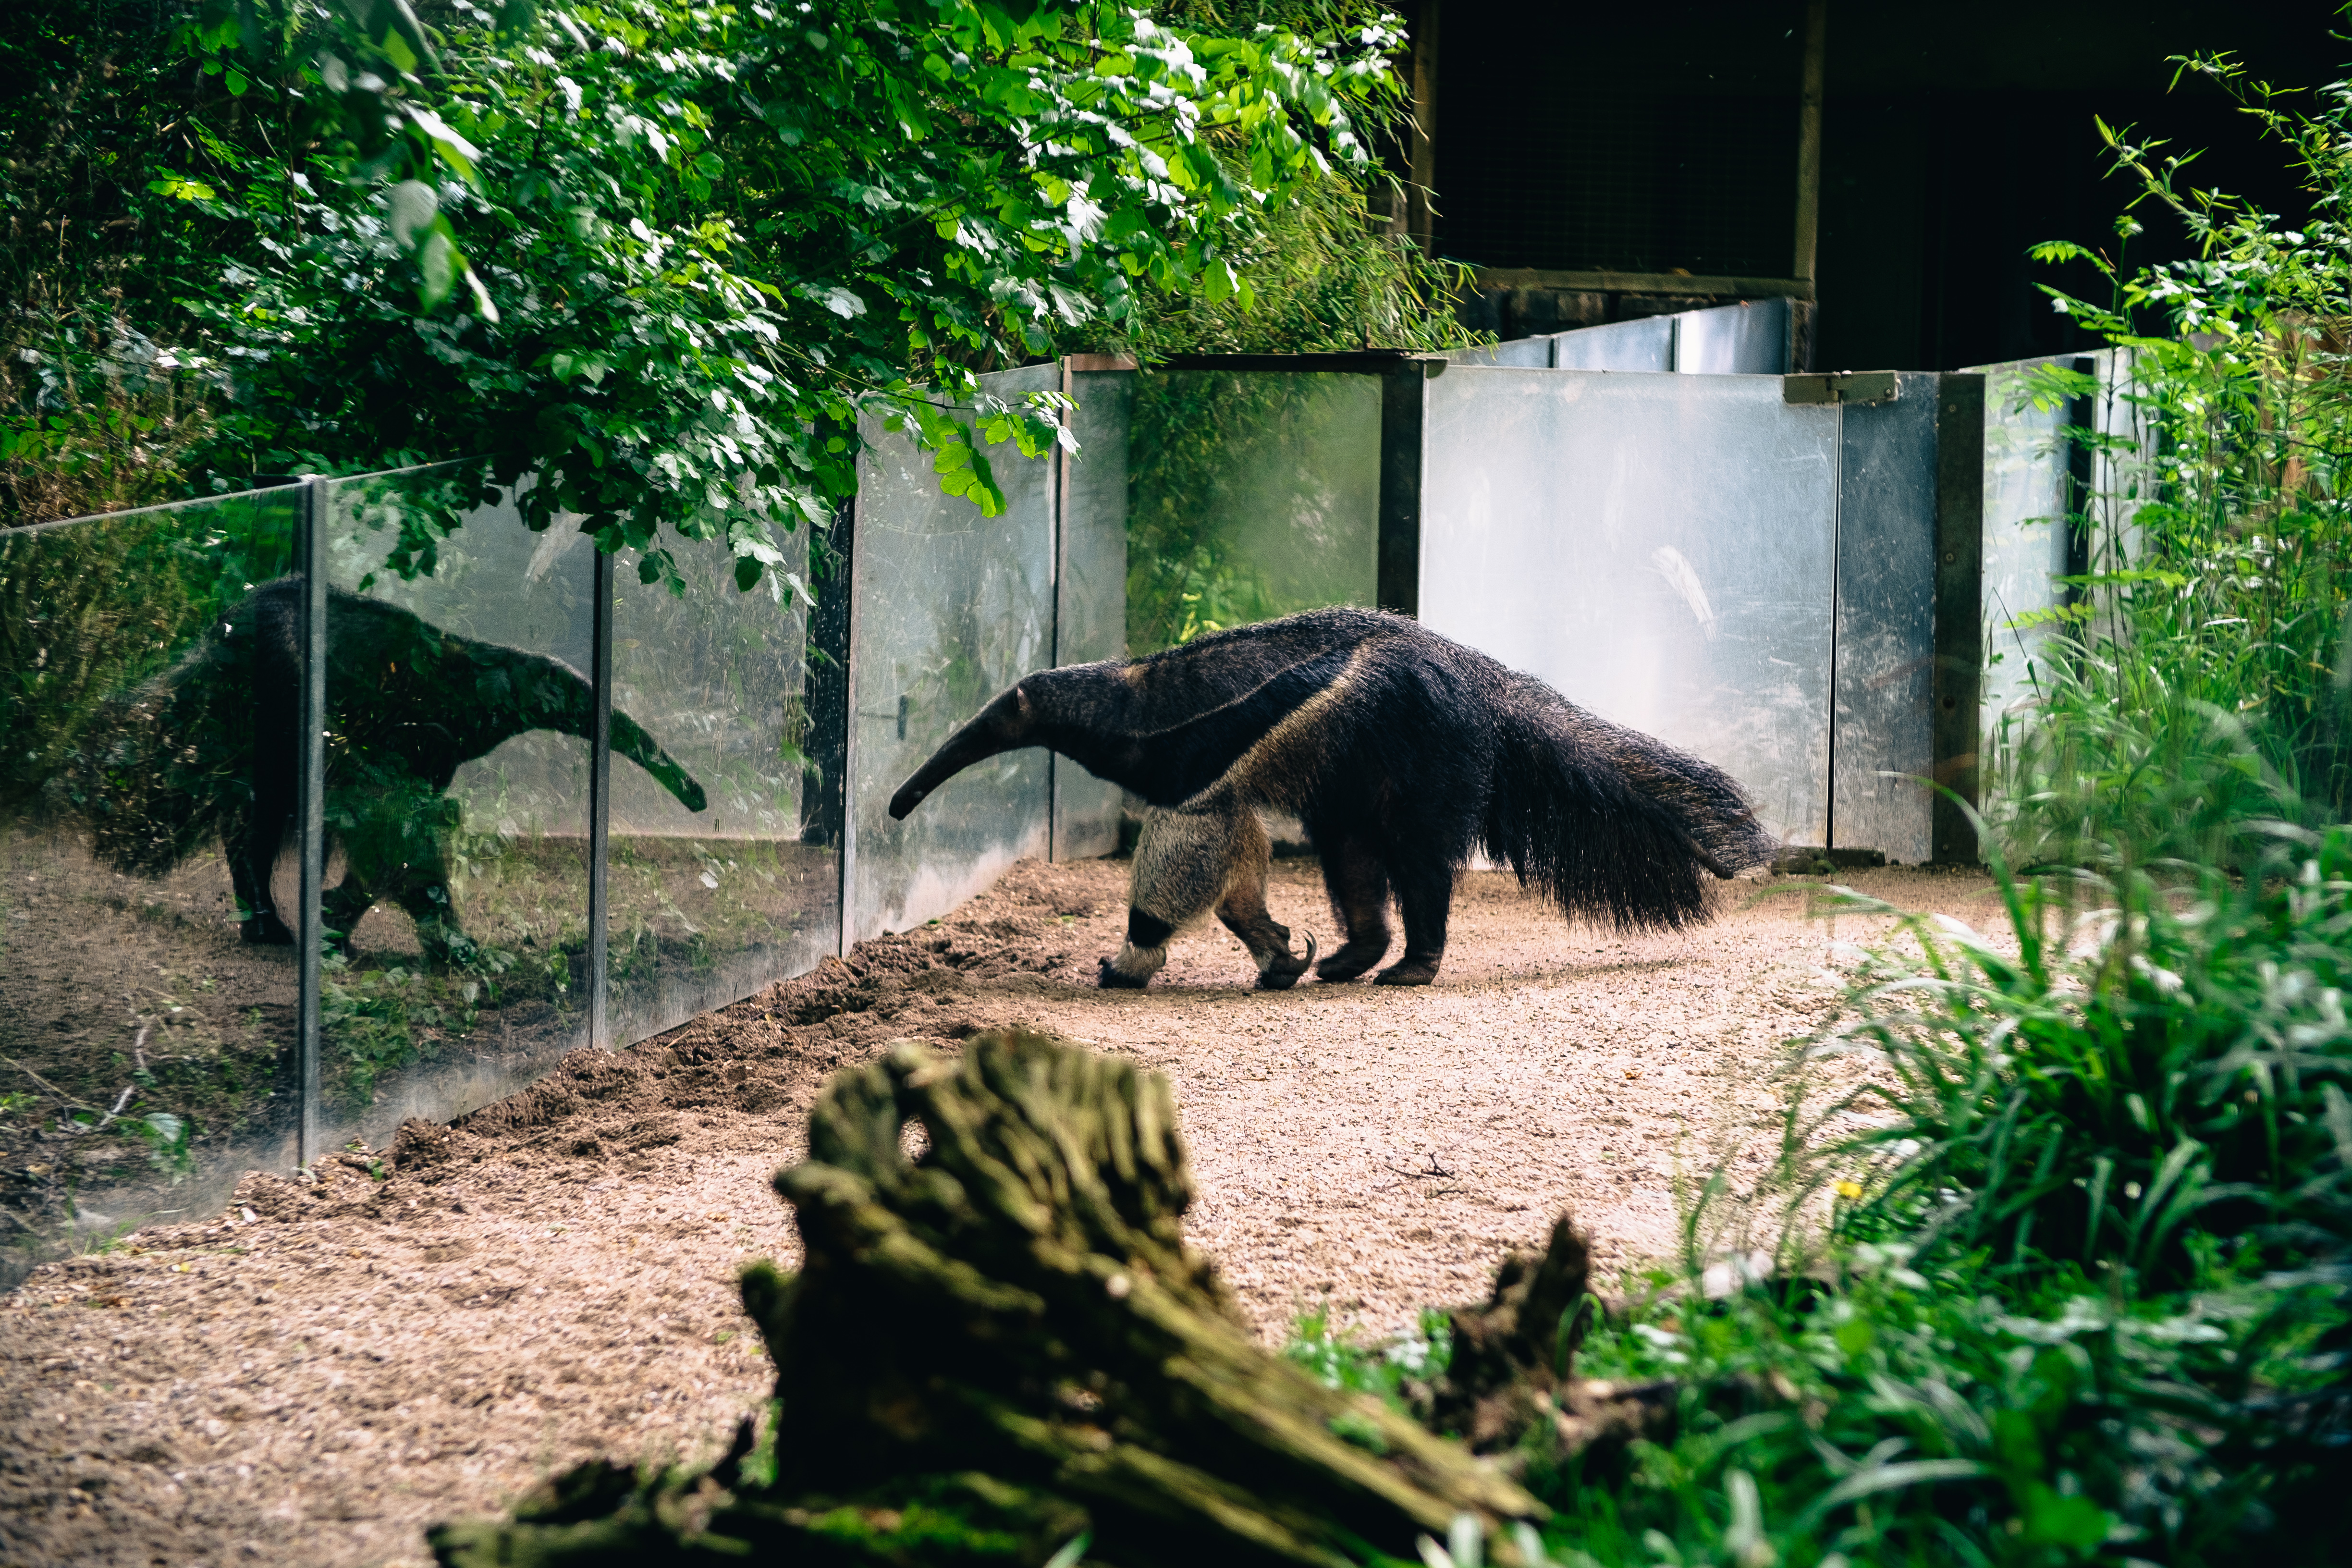 An anteater in the zoo of Dortmund.